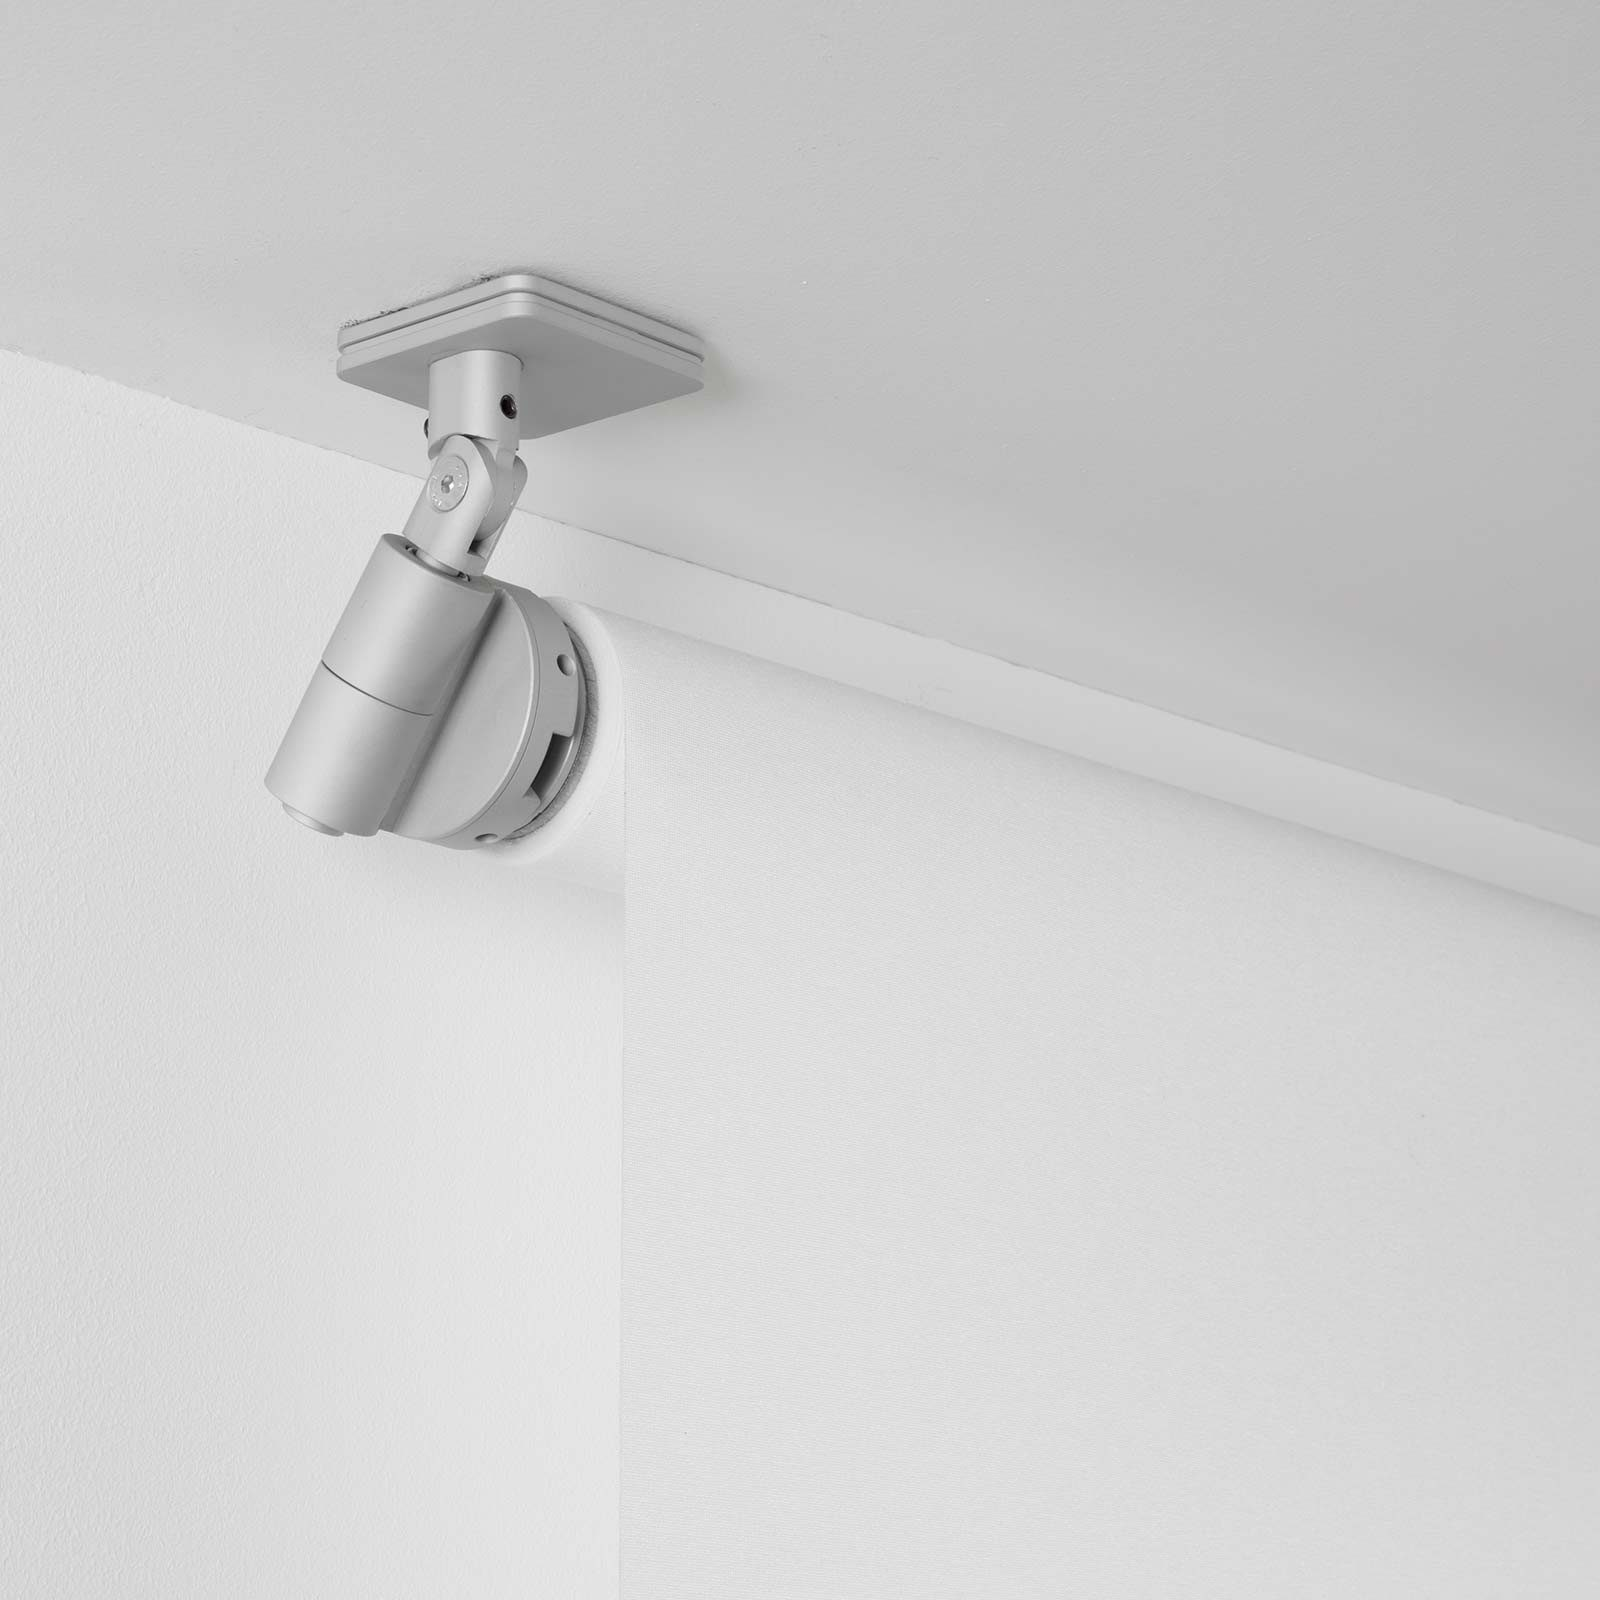 Flexy Top — On ceiling mounted